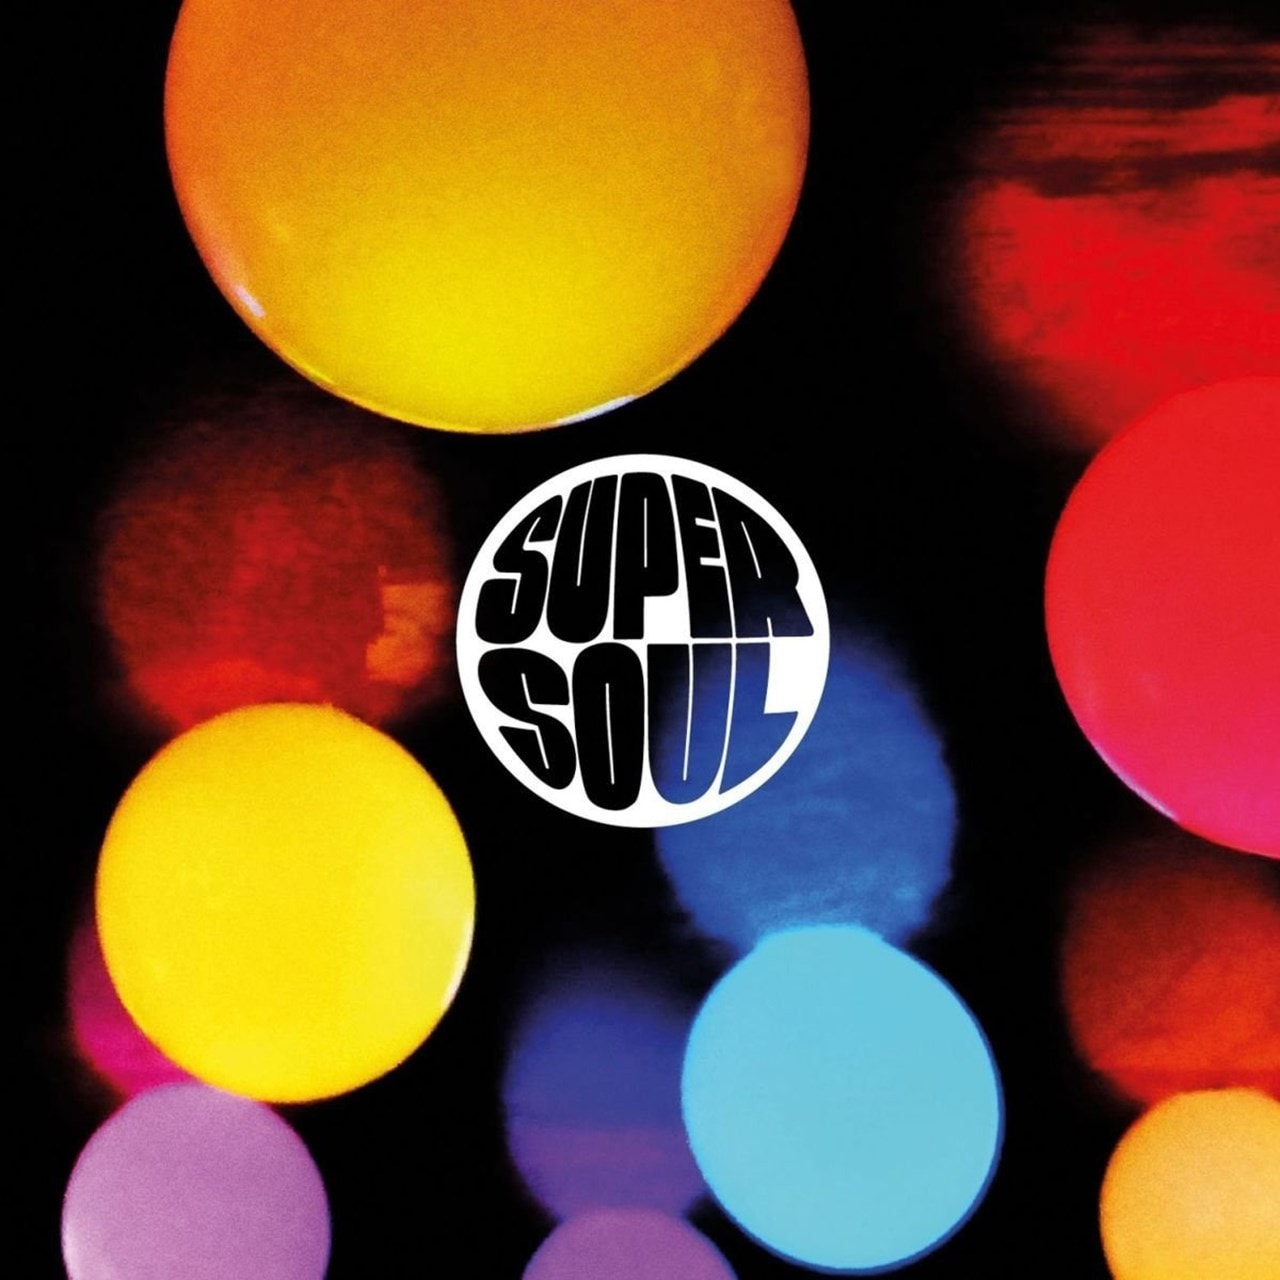 Supersoul - 1